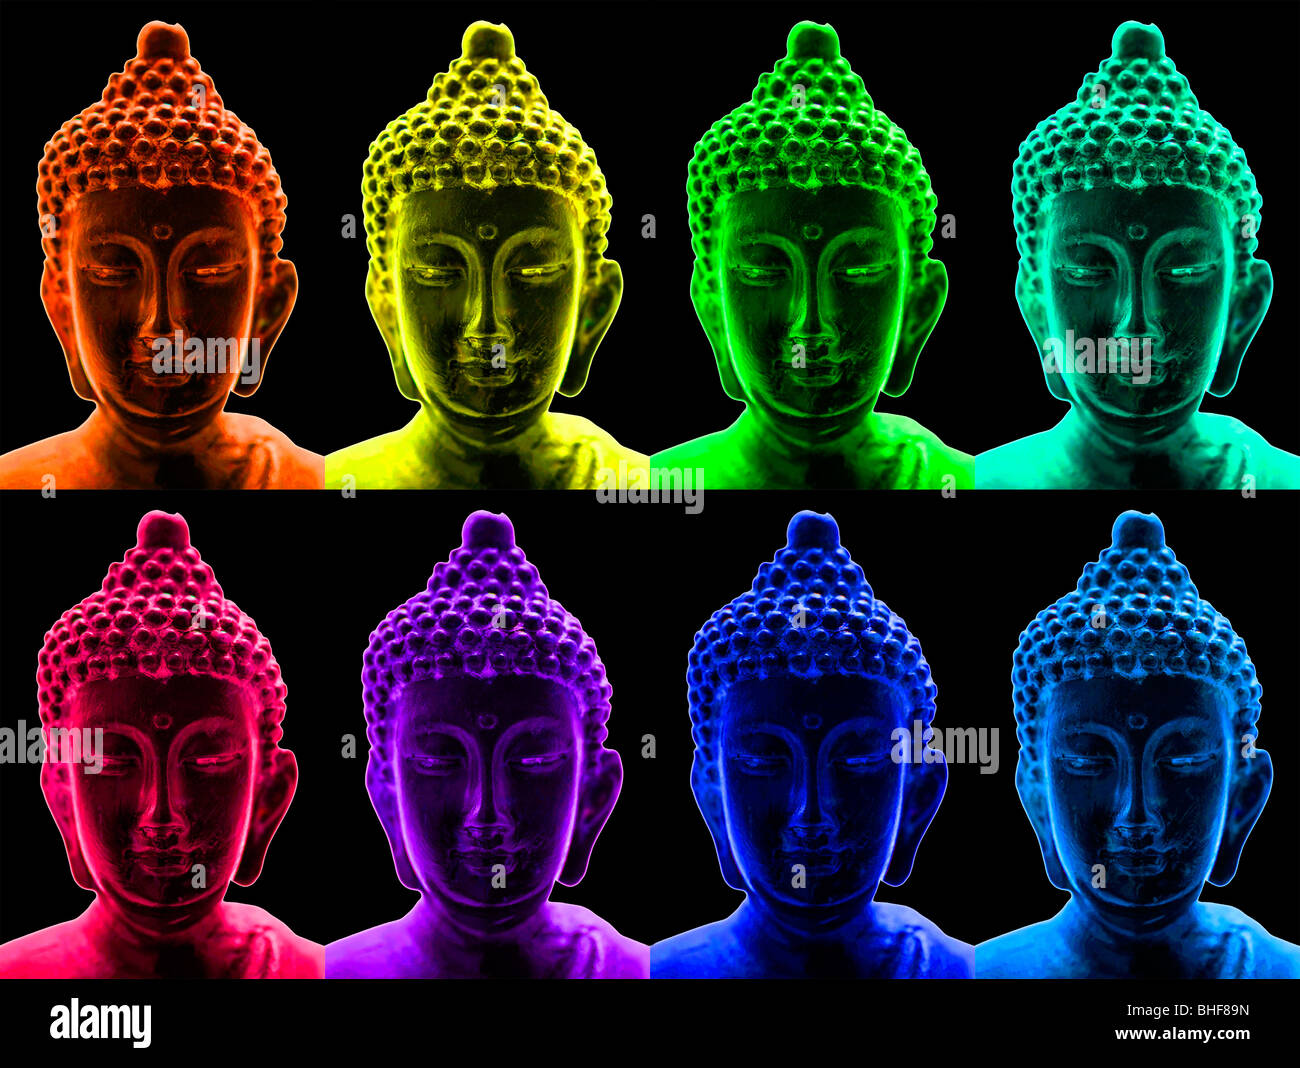 Buddha portraits in a pop art style - Stock Image